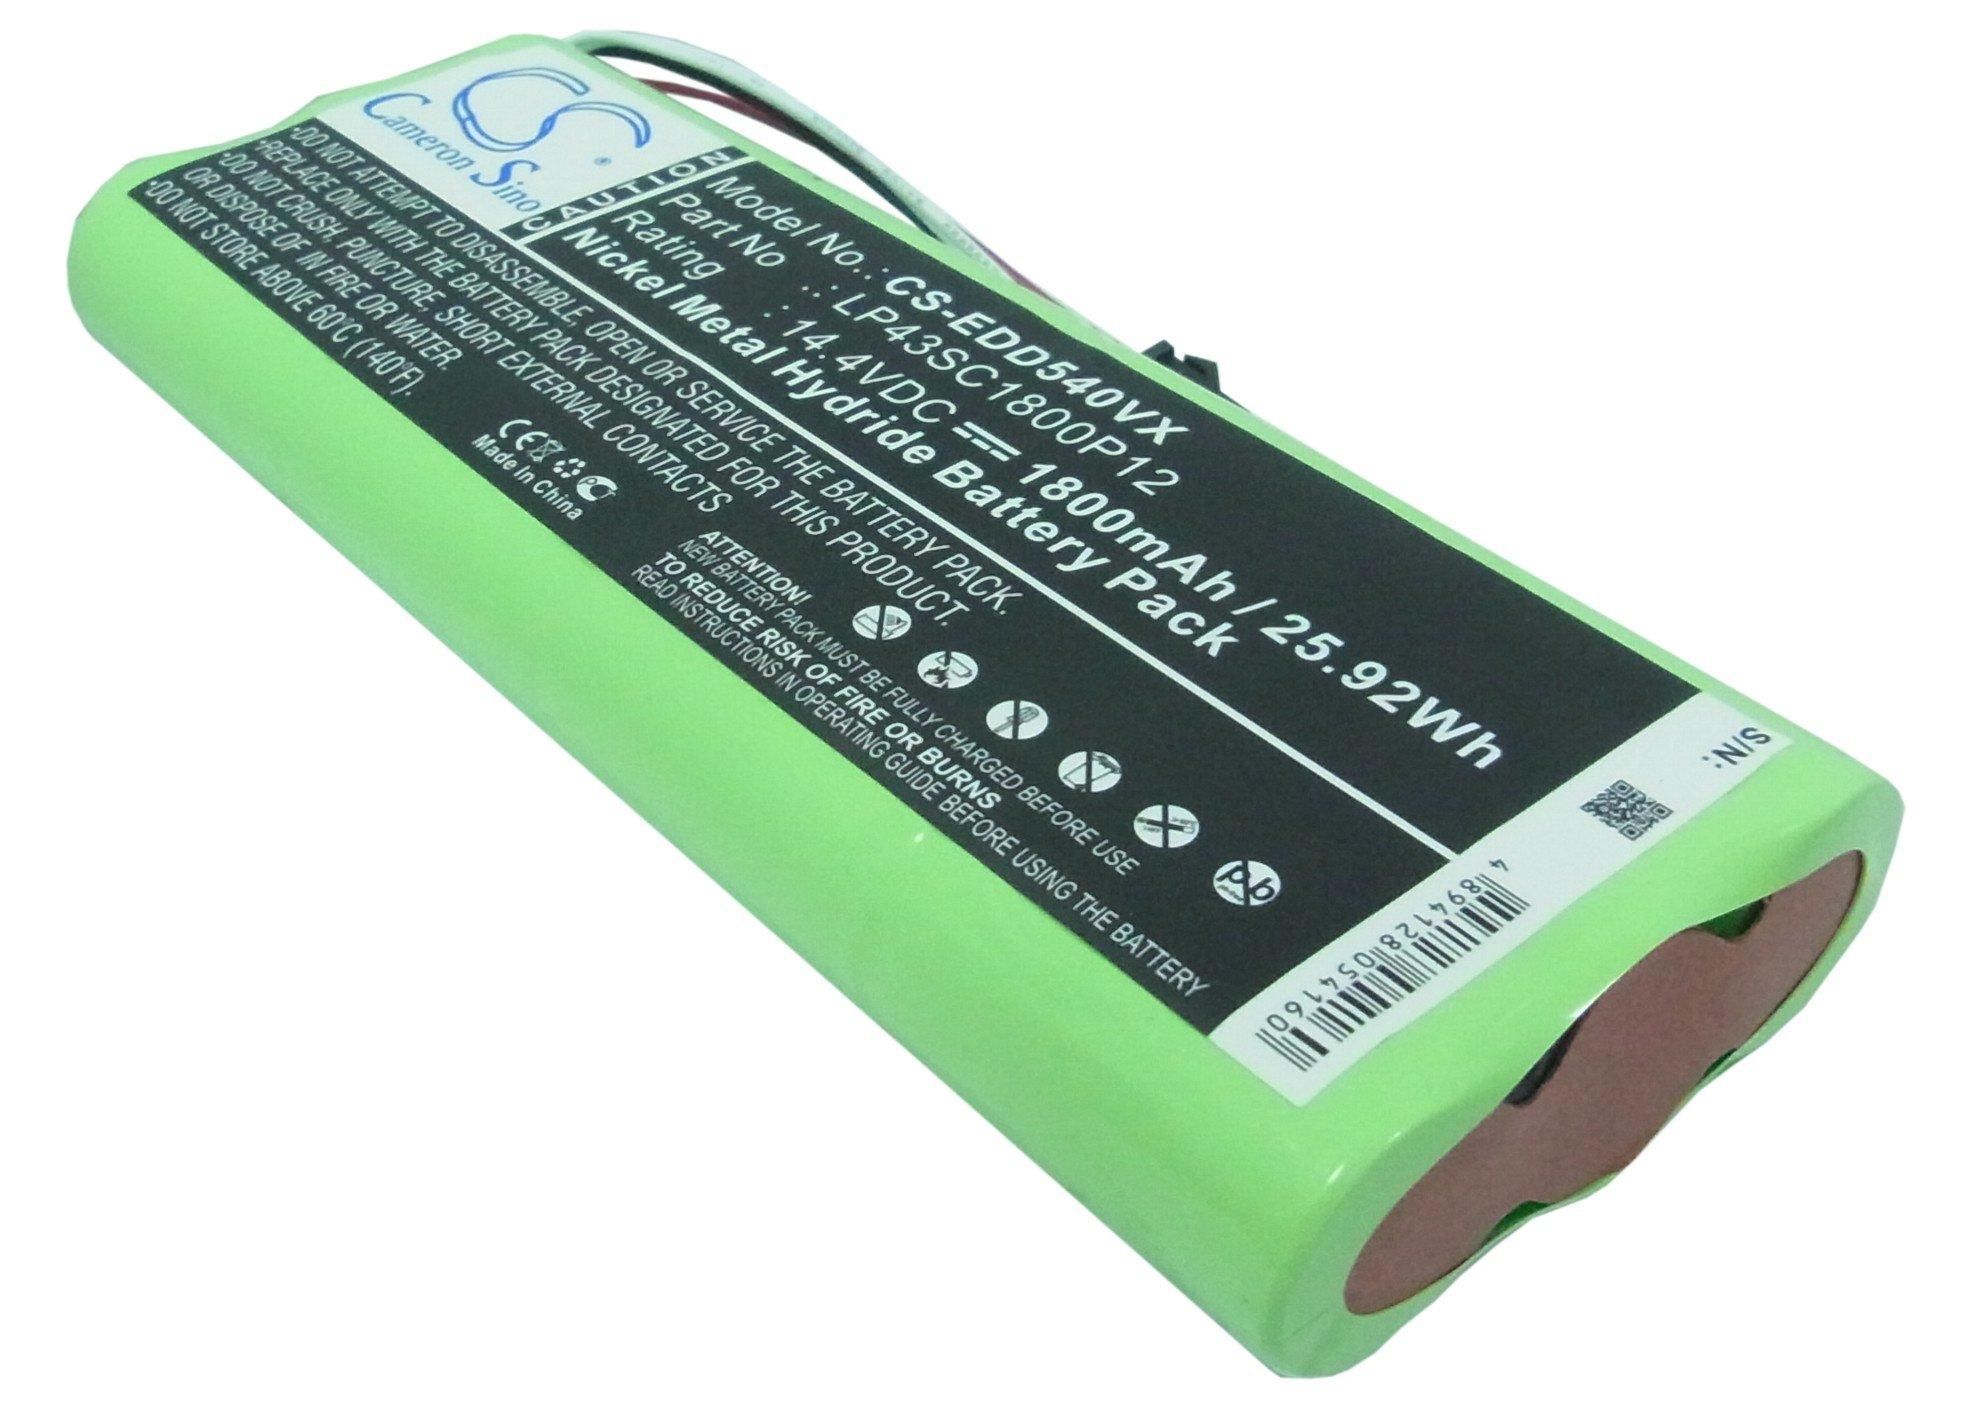 Replacement Battery for ECOVACS Deebot D523 Deebot D540 Deebot D550 Deebot D560 Deebot D570 Deebot D580 LP43SC1800P12